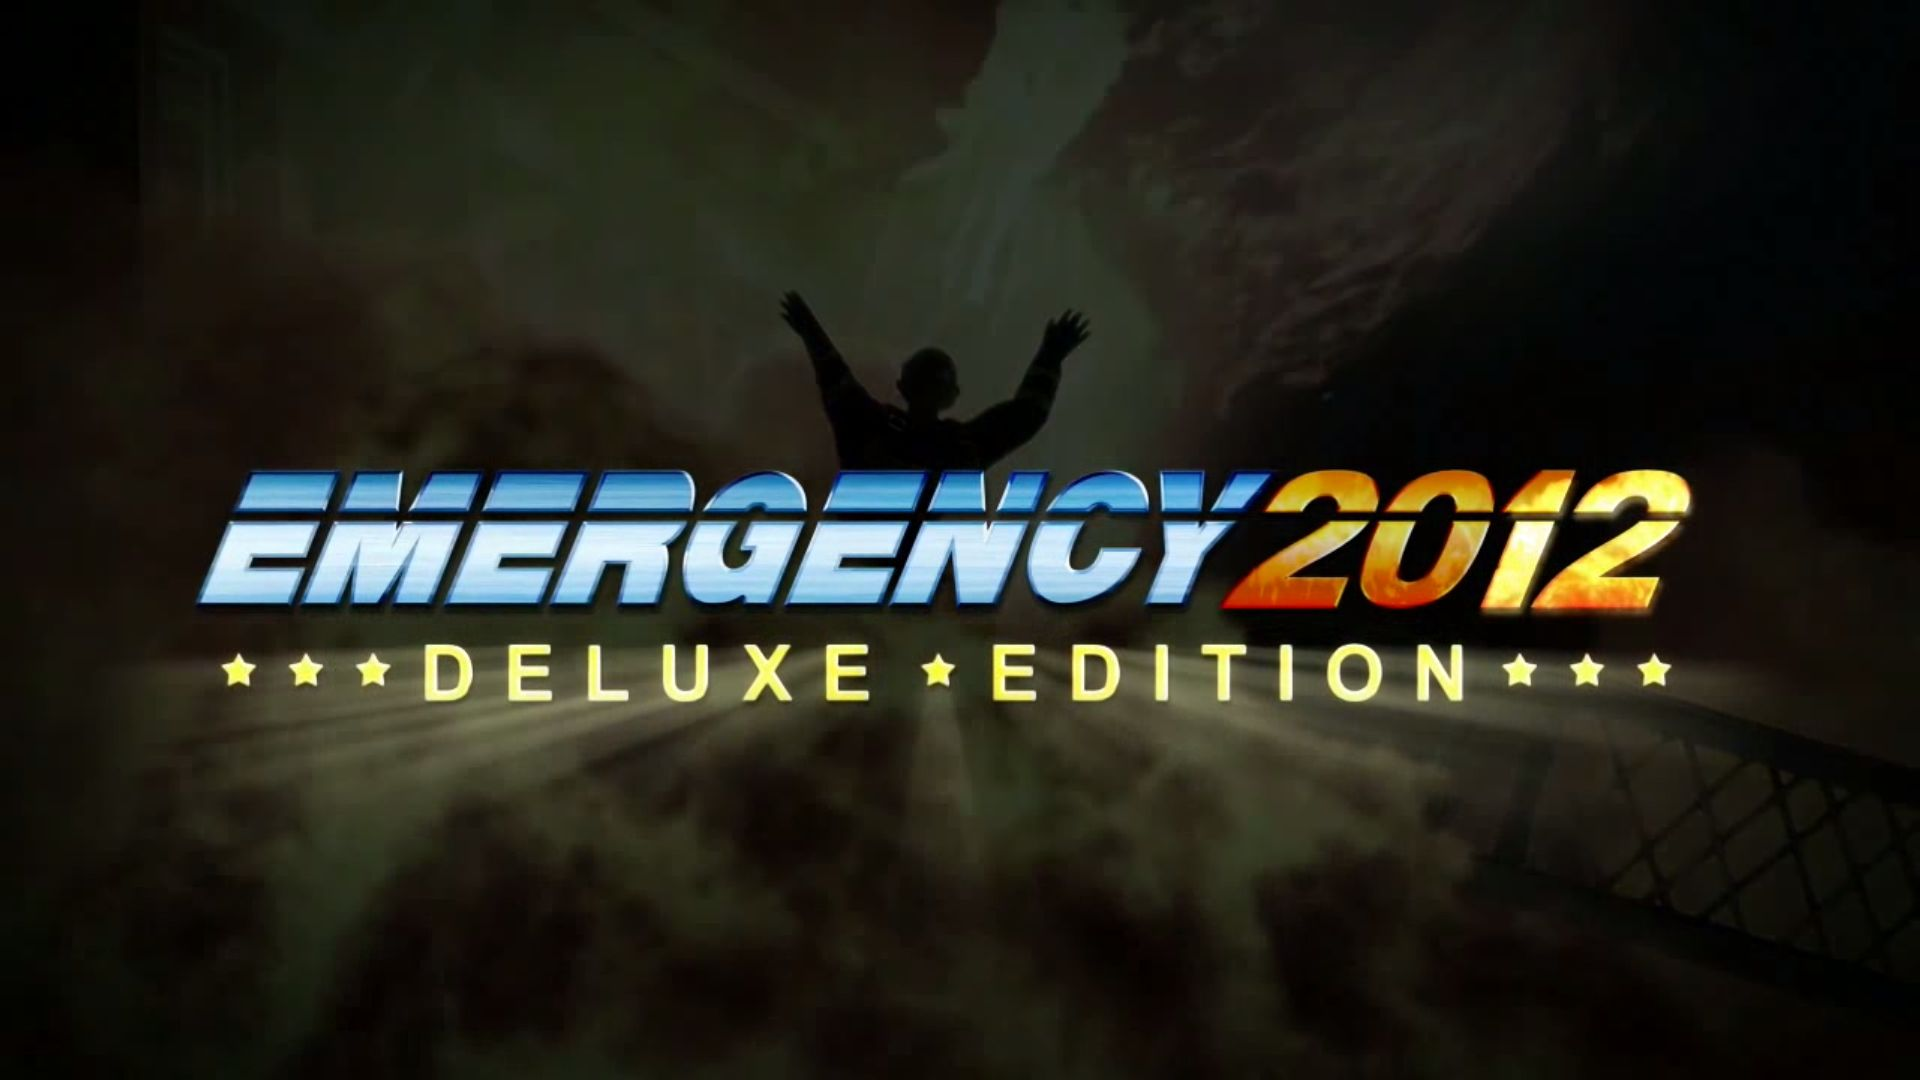 Emergency 2012 (Deluxe) Windows End of the intro fading into the game logo.